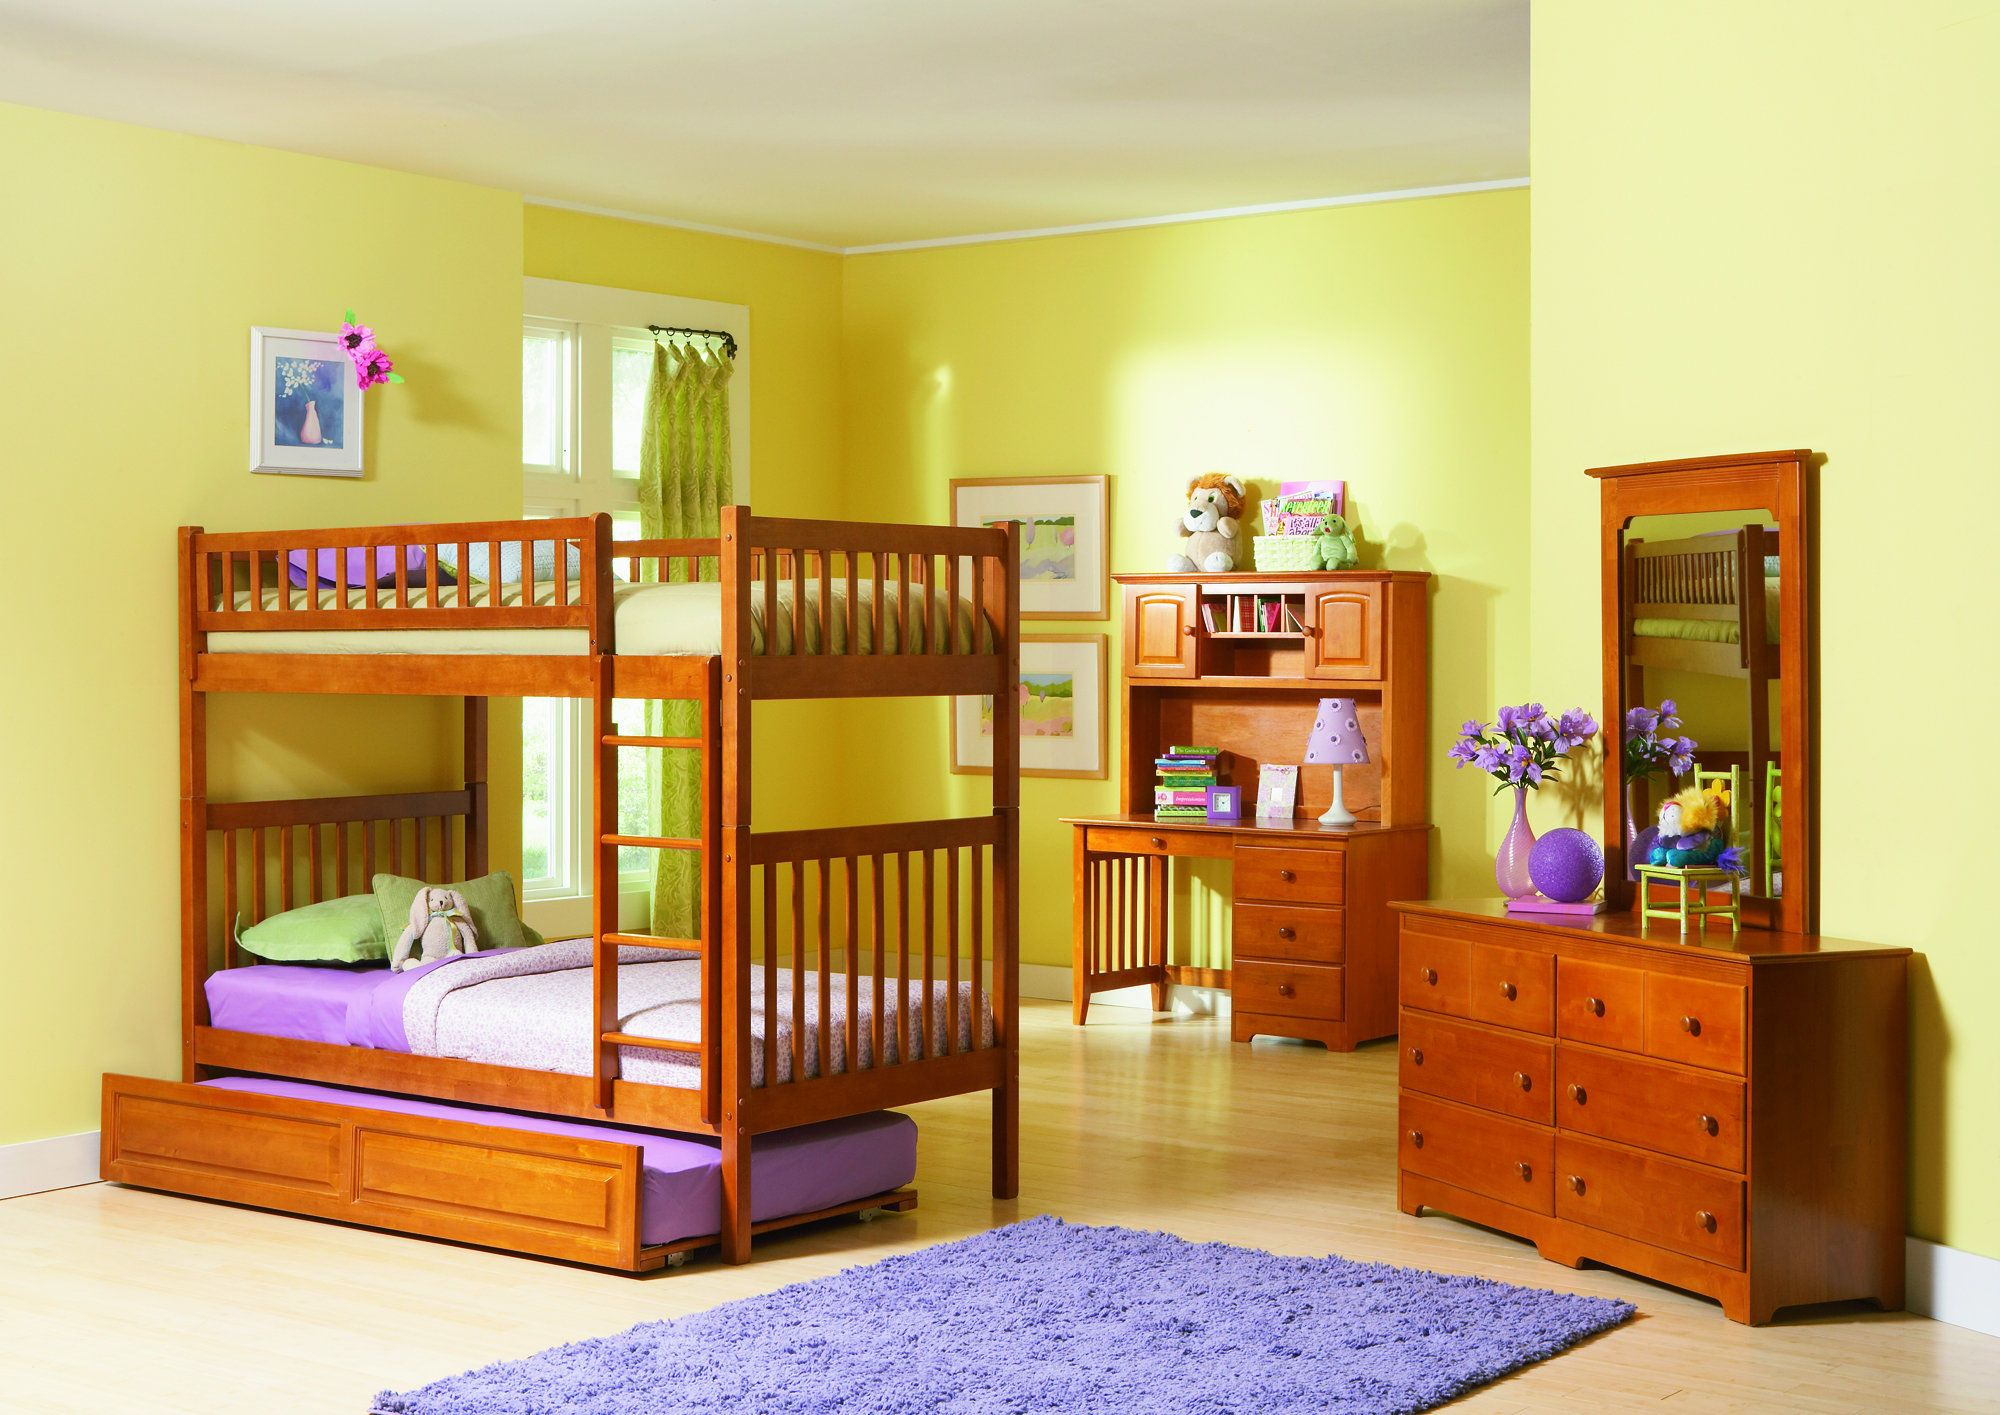 Pin By Juan Julia On Projects To Try Childrens Bedroom Furniture Baby Bedroom Furniture Arranging Bedroom Furniture